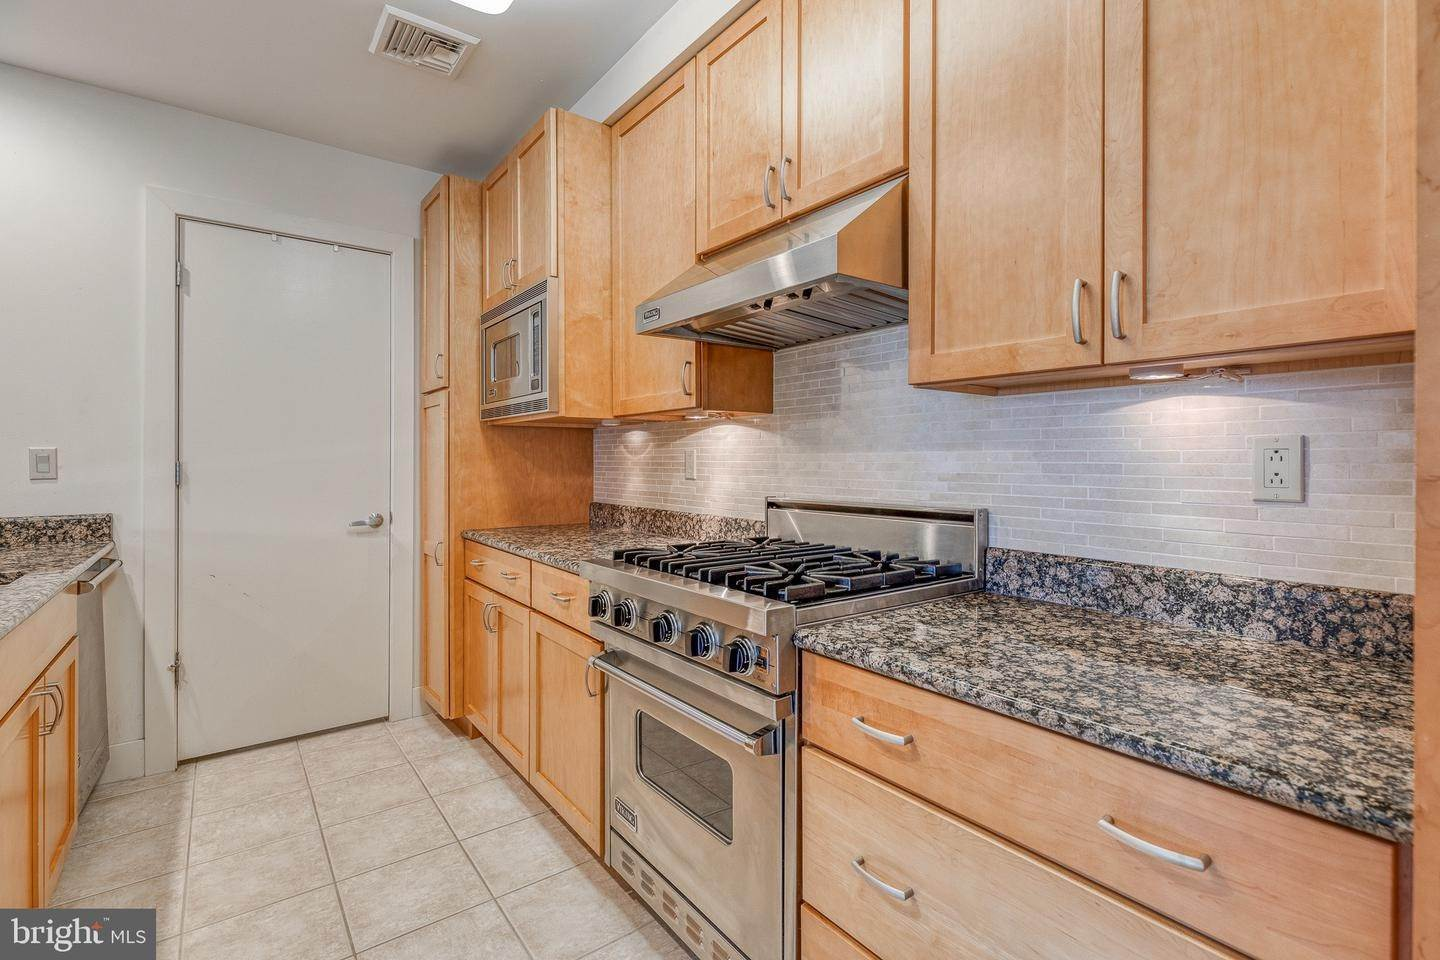 12. Apartments for Sale at 23 S 23RD ST #5B Philadelphia, Pennsylvania 19103 United States